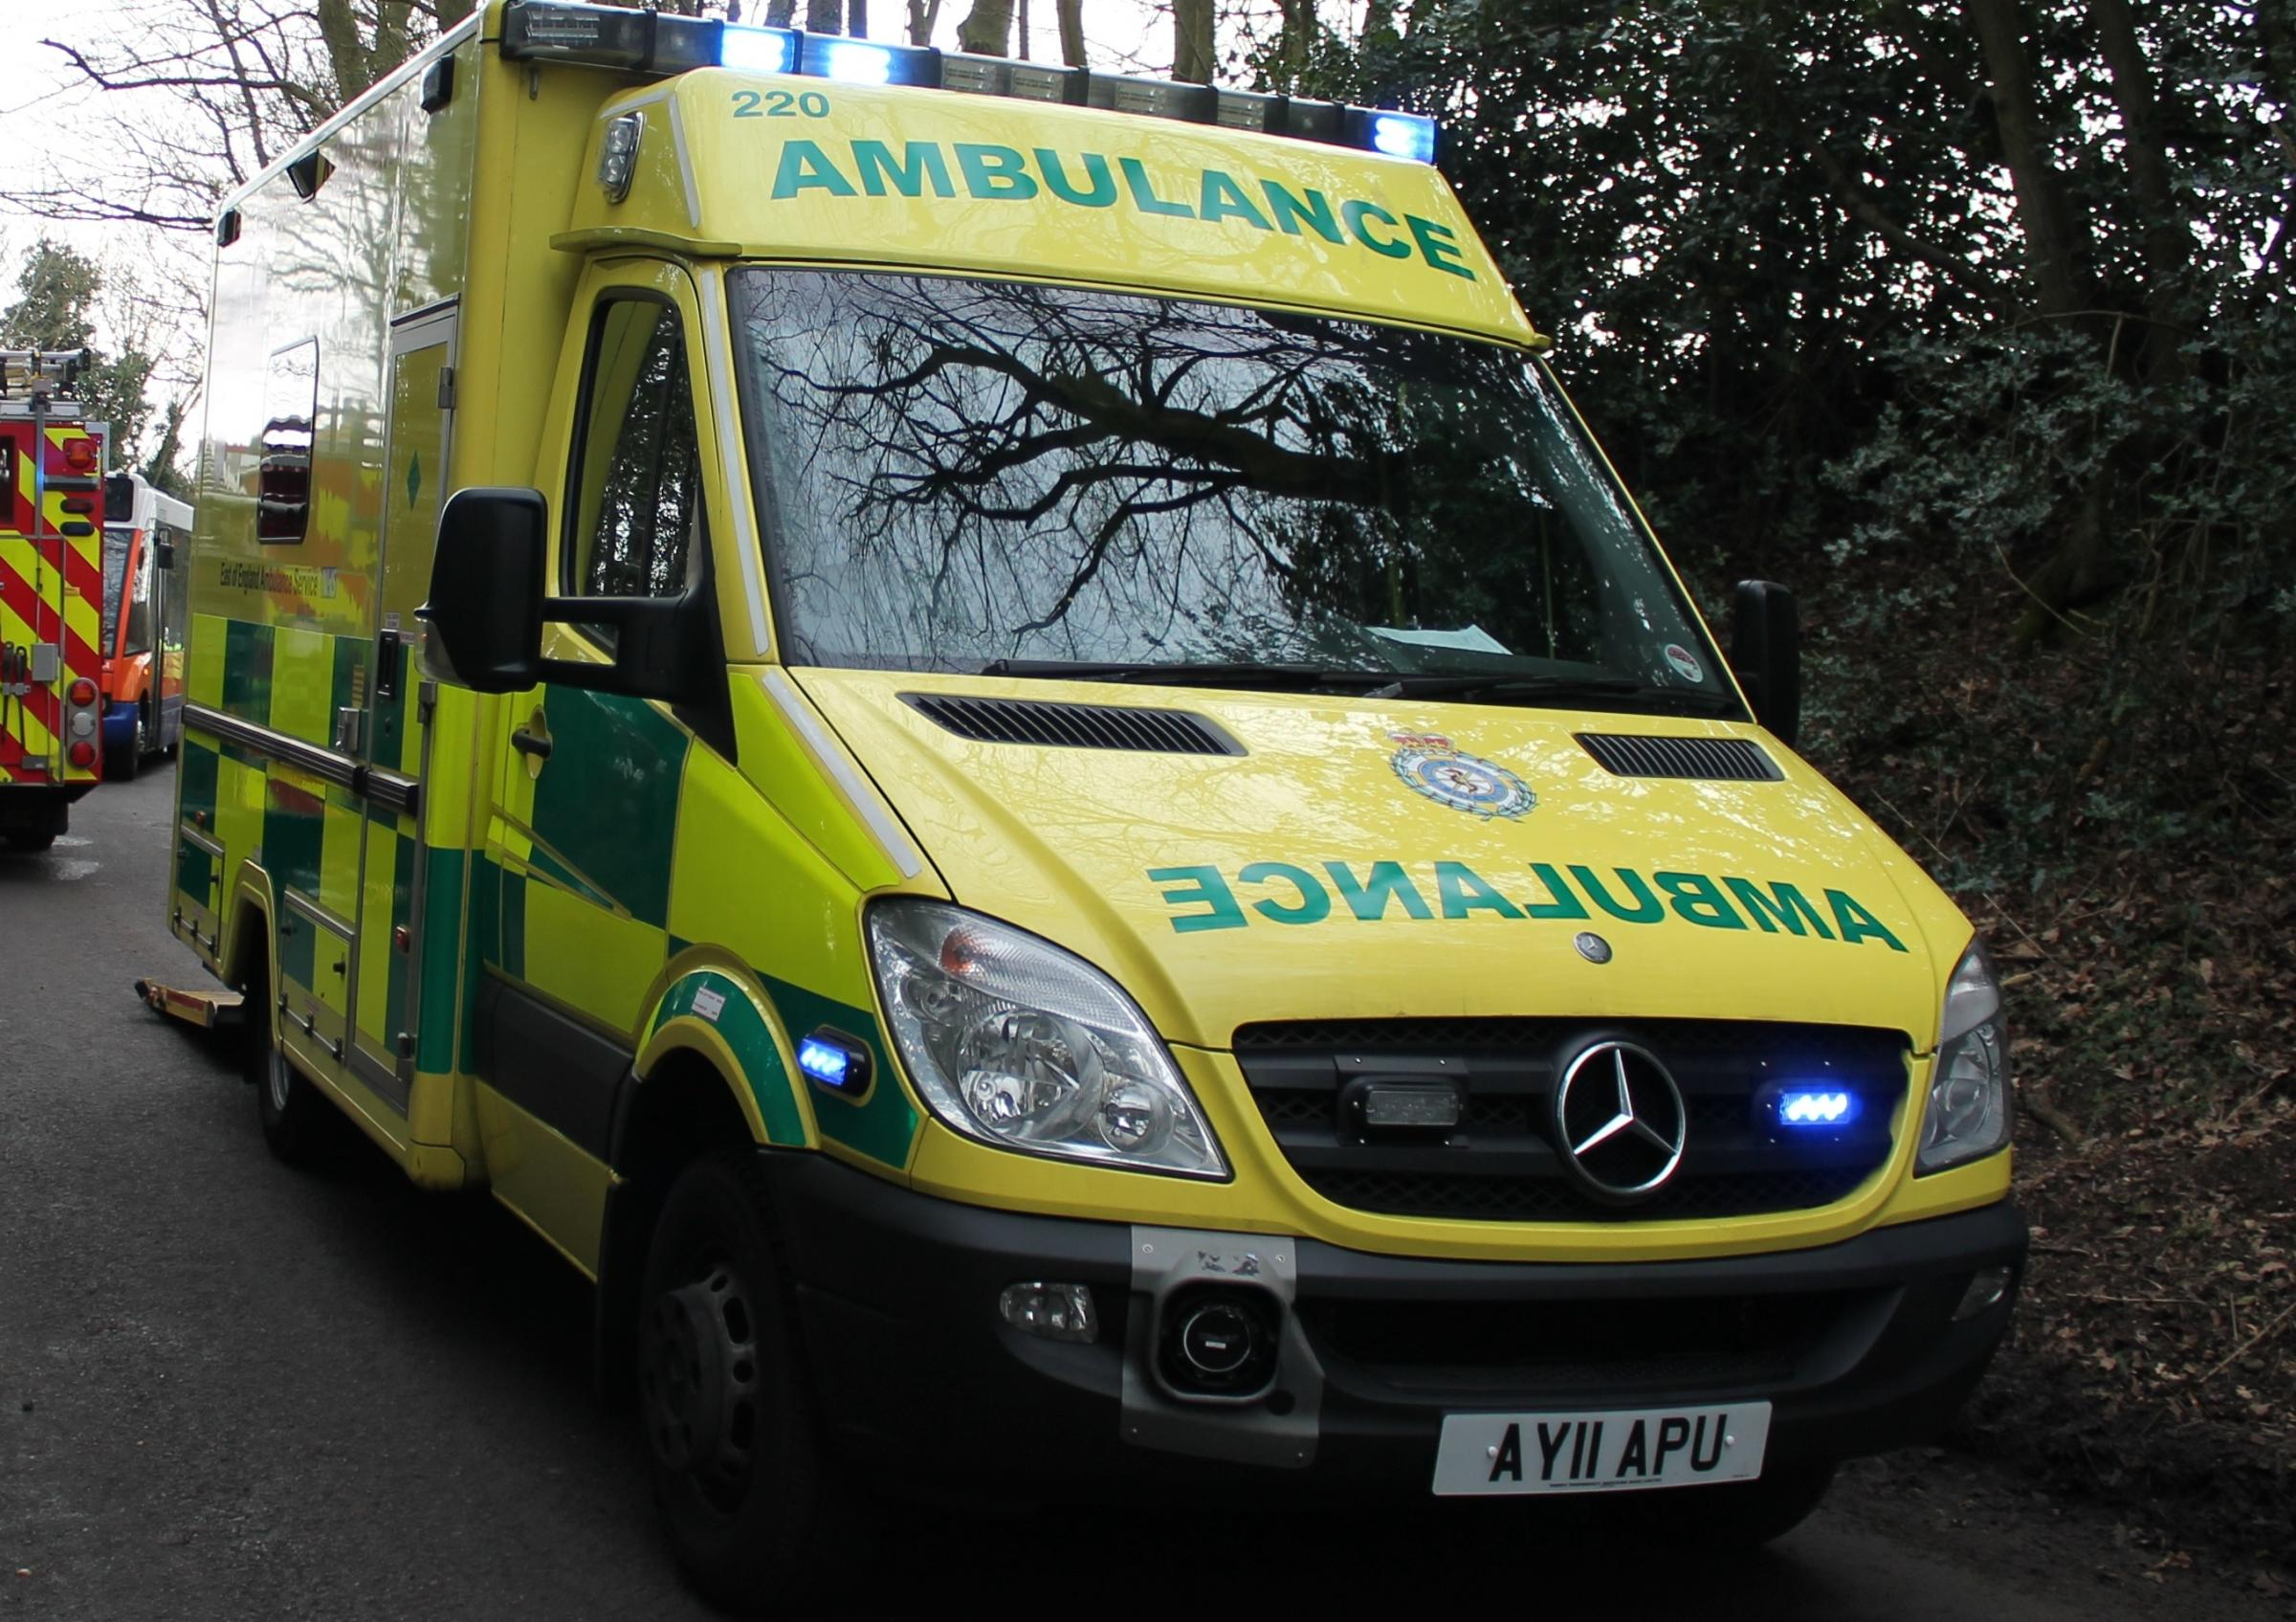 Ambulance at scene of A12 crash